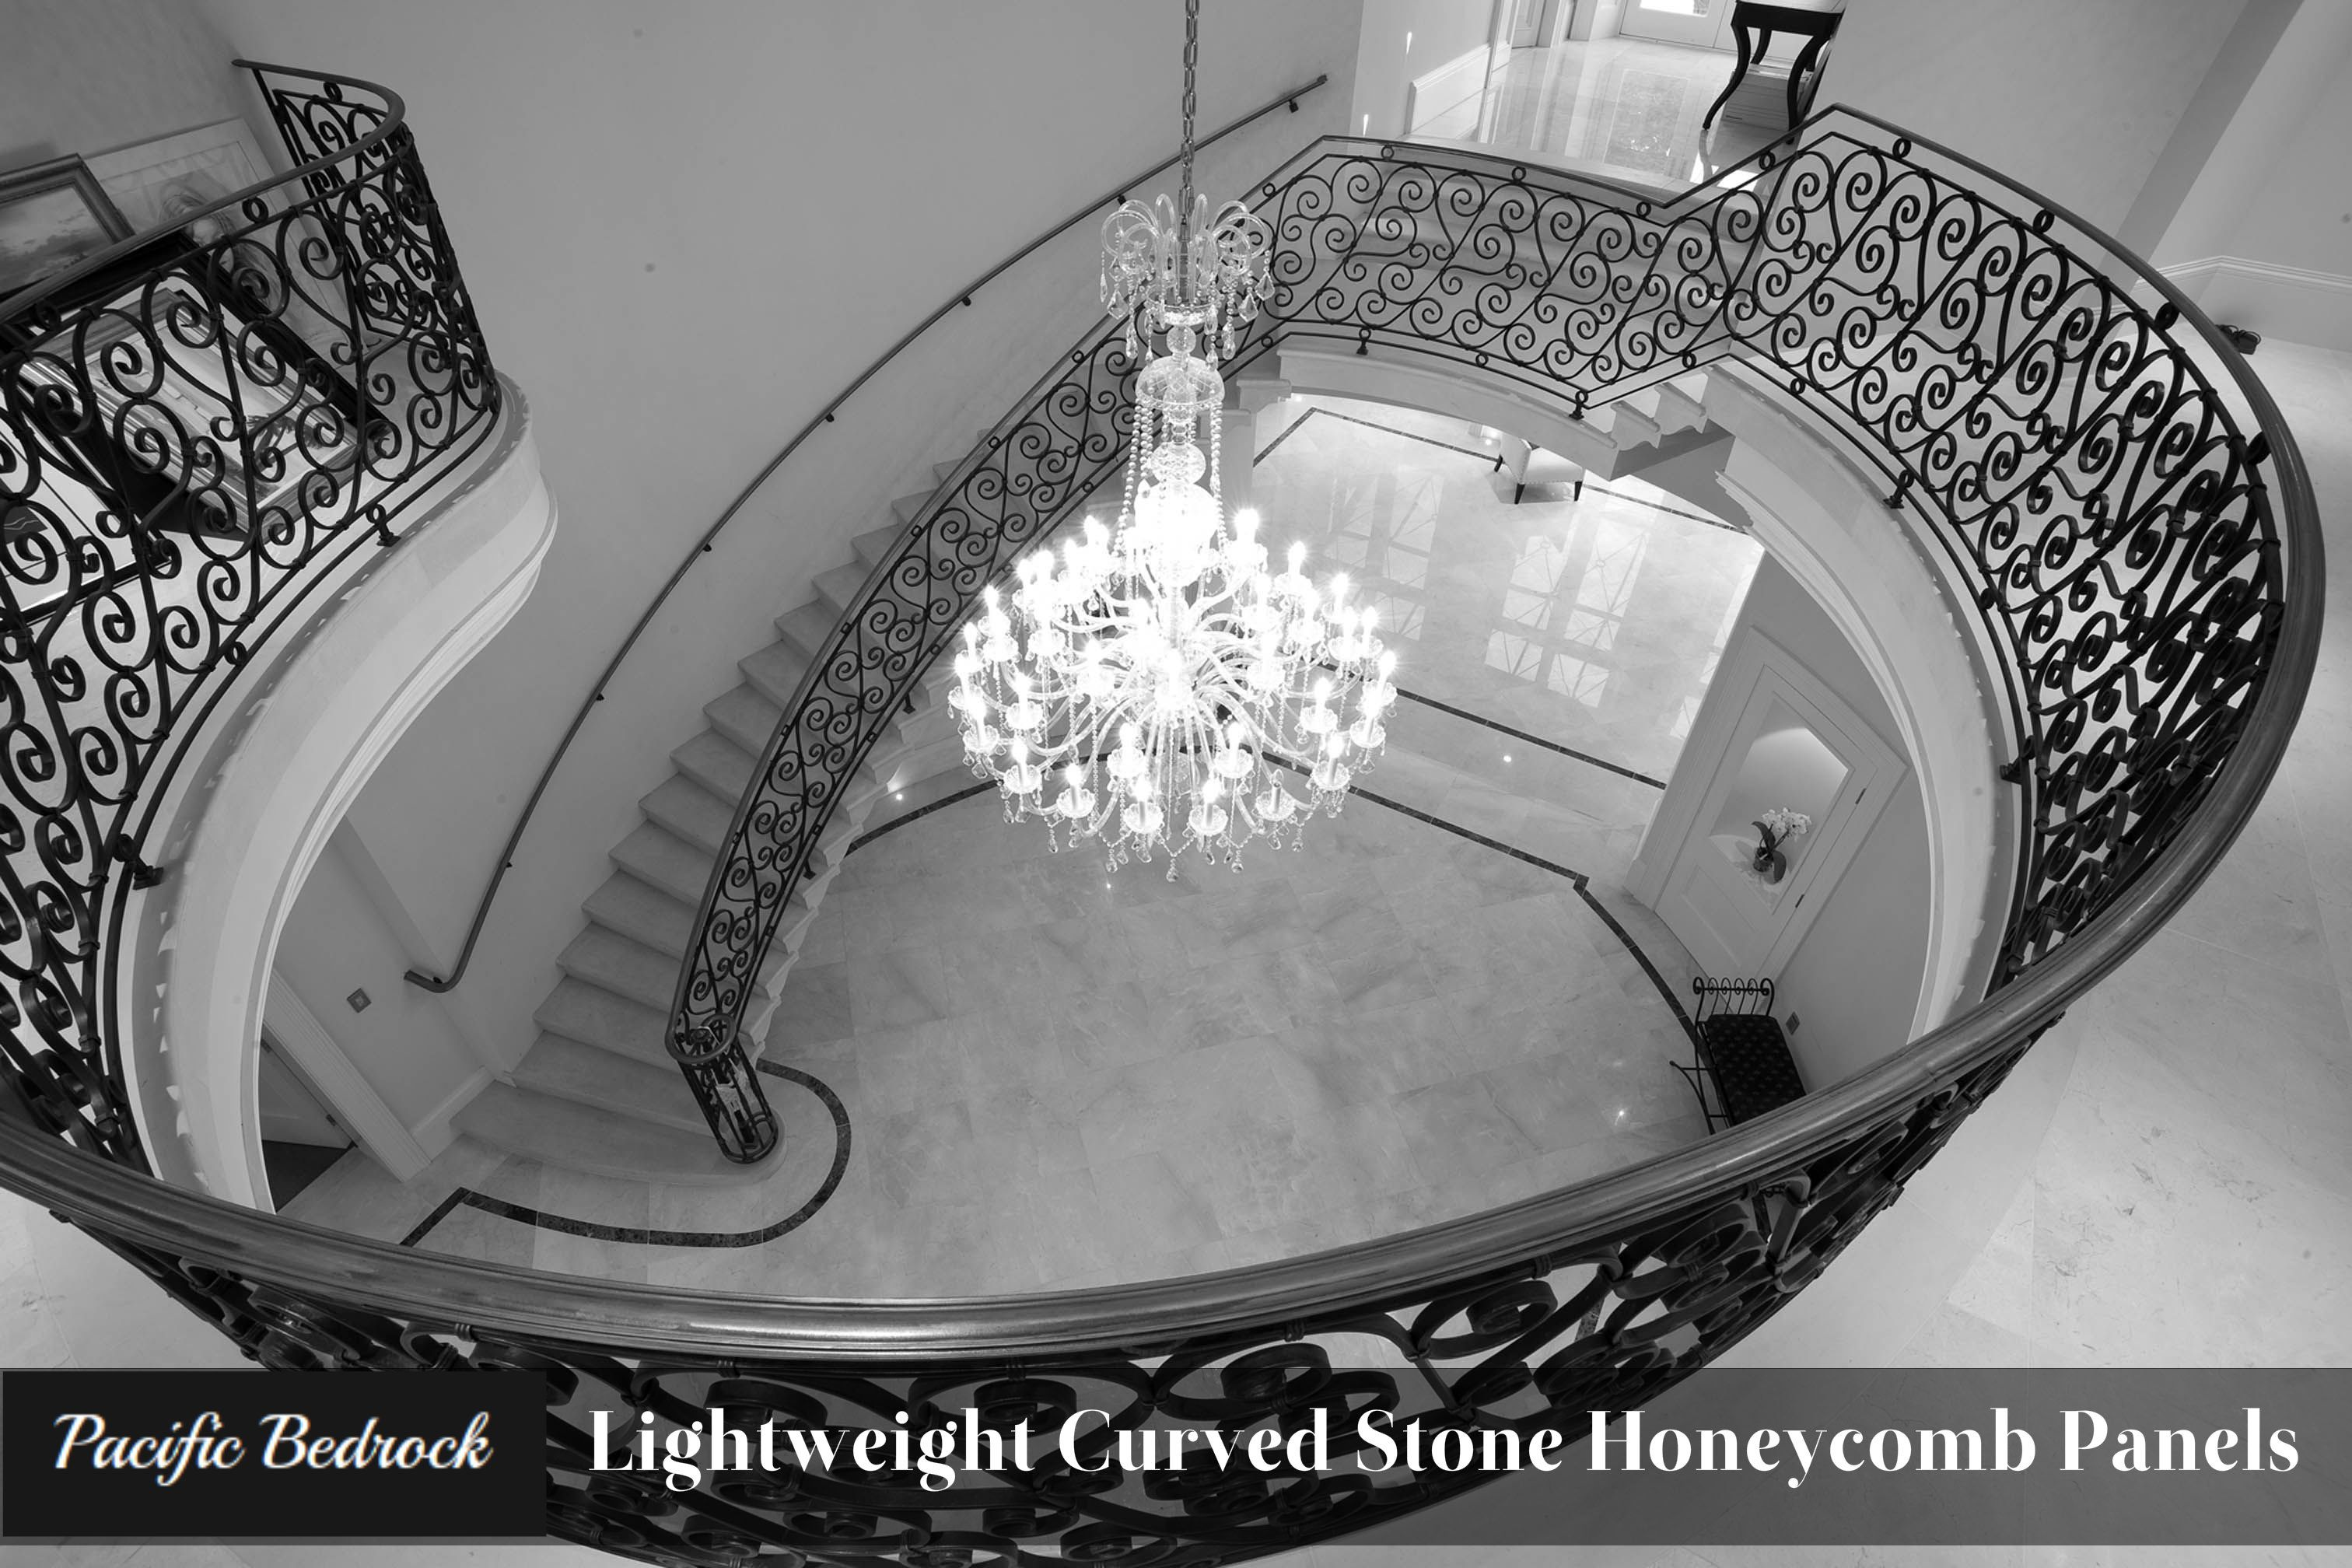 Lightweight Curved Stone Honeycomb Panels Pacificbedrock Http Bit Ly 1netyac Staircase Contemporary Staircase Design Staircase